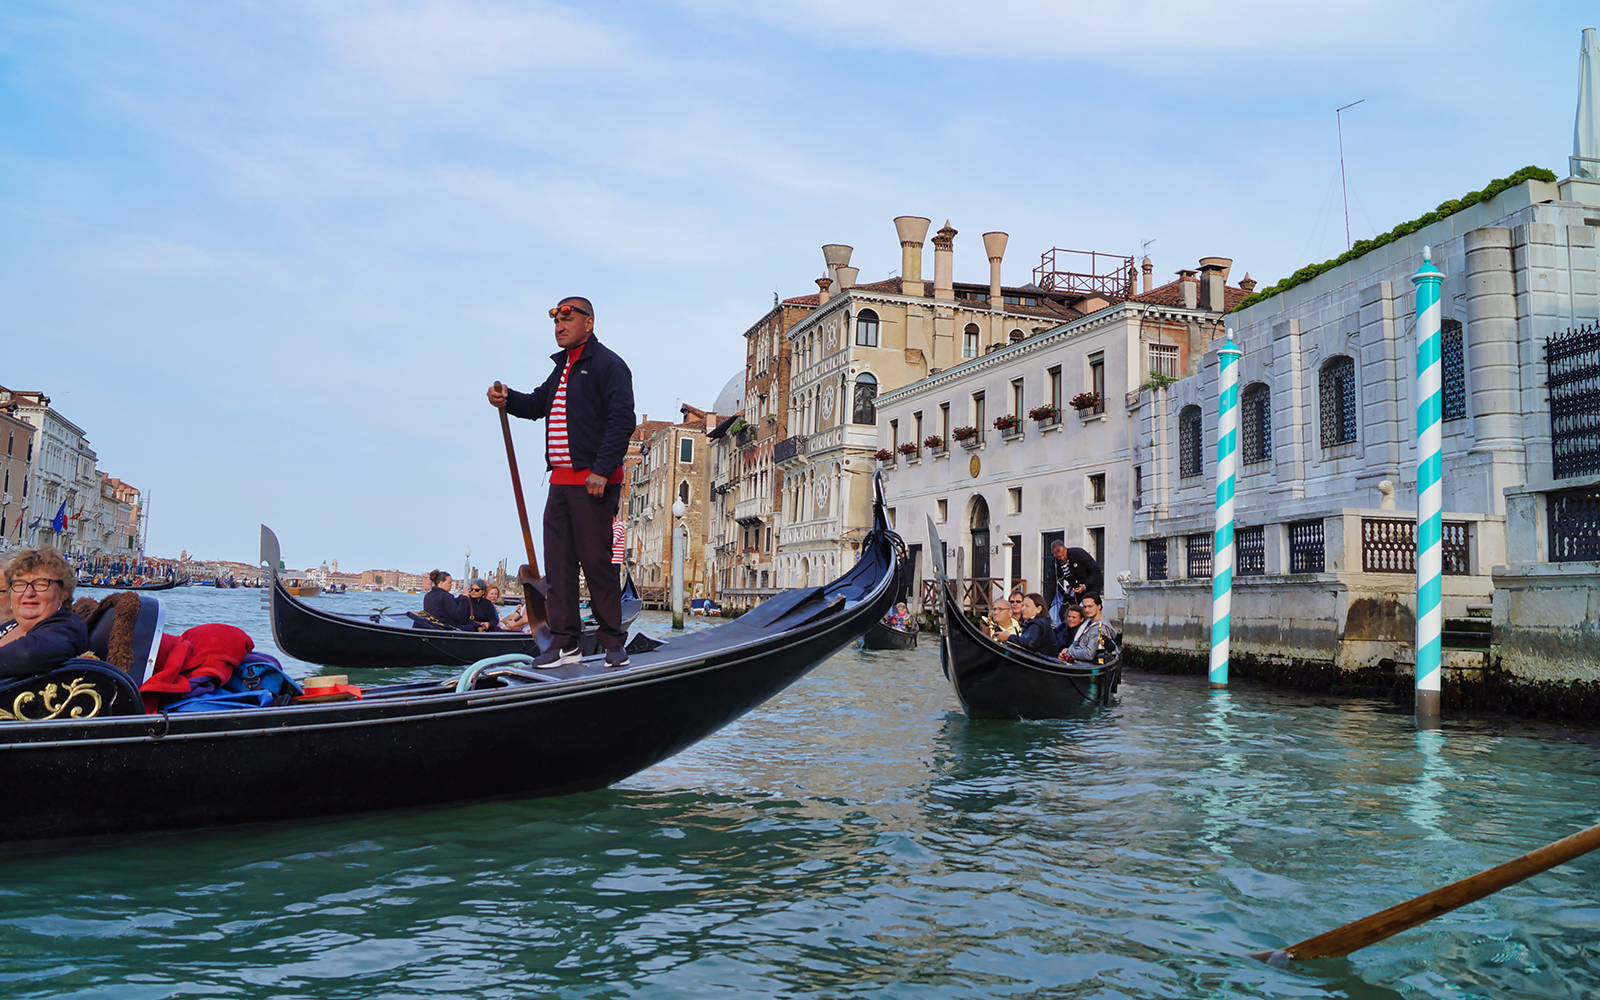 84eeca1e 36be 48ff 9e90 a782c521950d 9752 venice skip the line doges palace entry and guide book with gondola 04